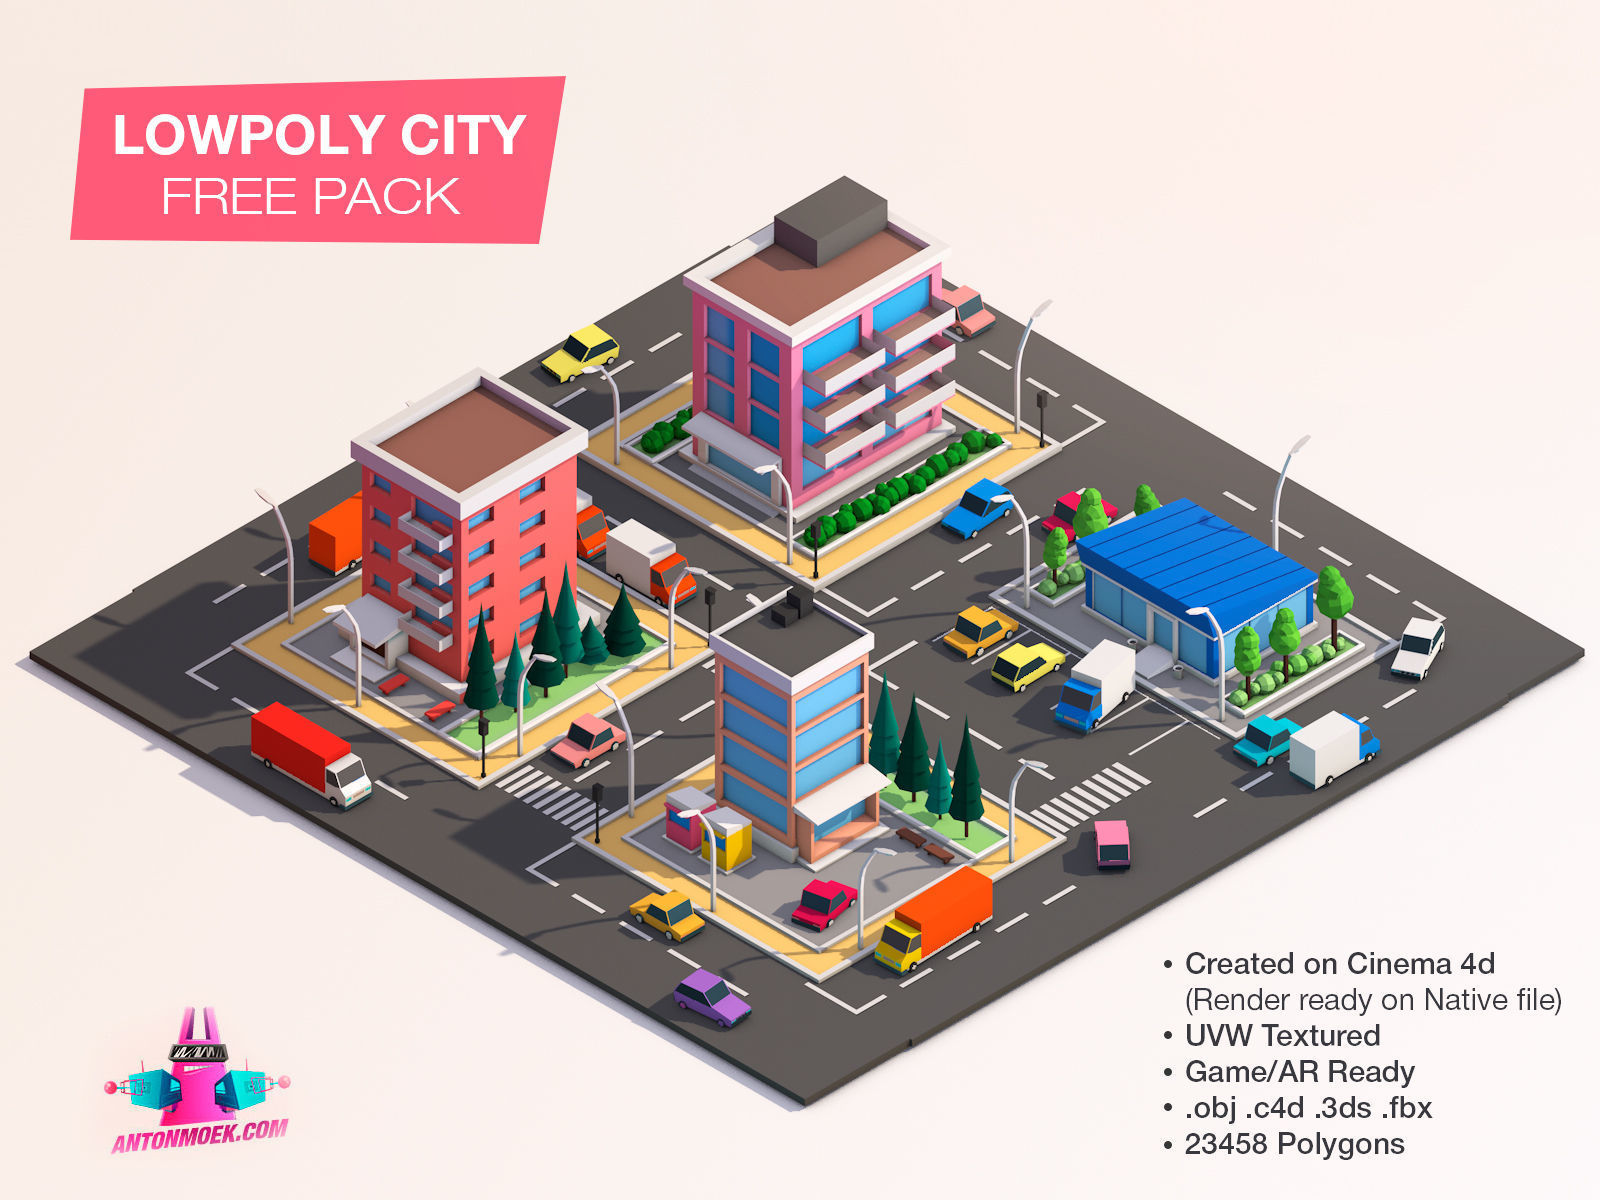 Cartoon Lowpoly City Free Game Pack 3D model   CGTrader